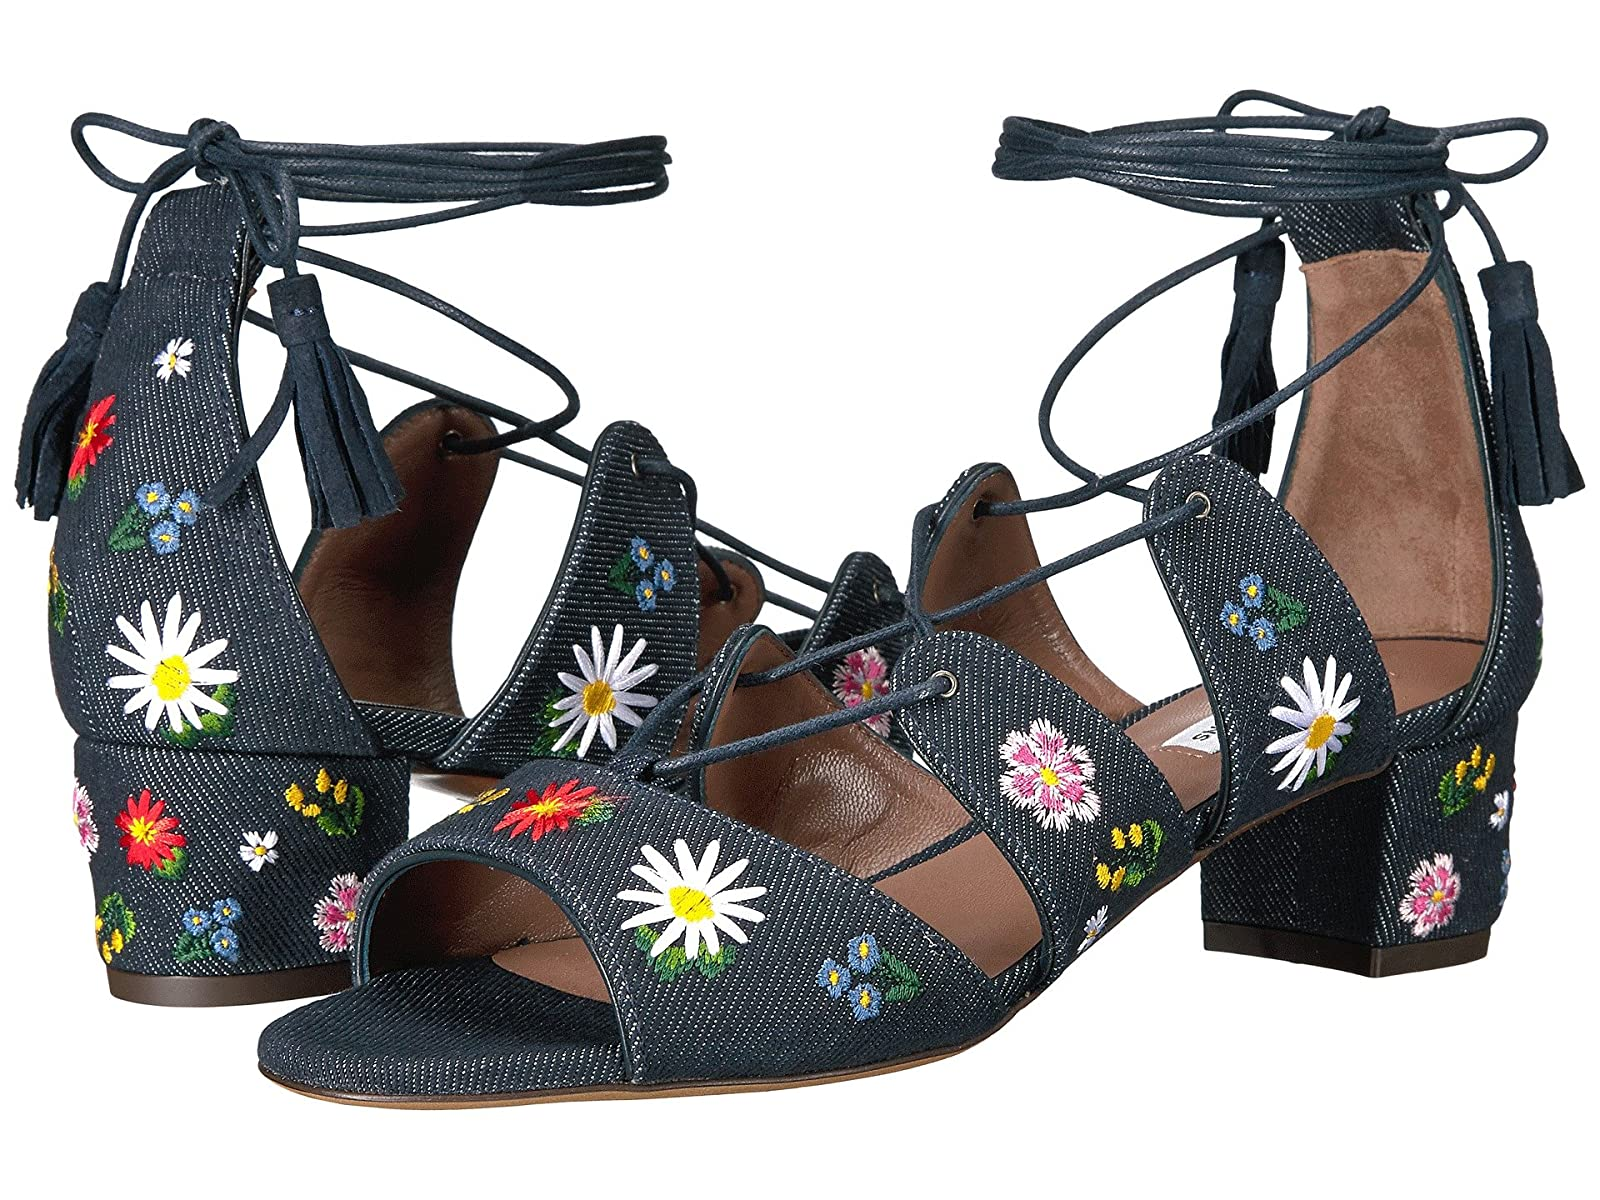 Tabitha Simmons Isadora Flower EmbroideredCheap and distinctive eye-catching shoes